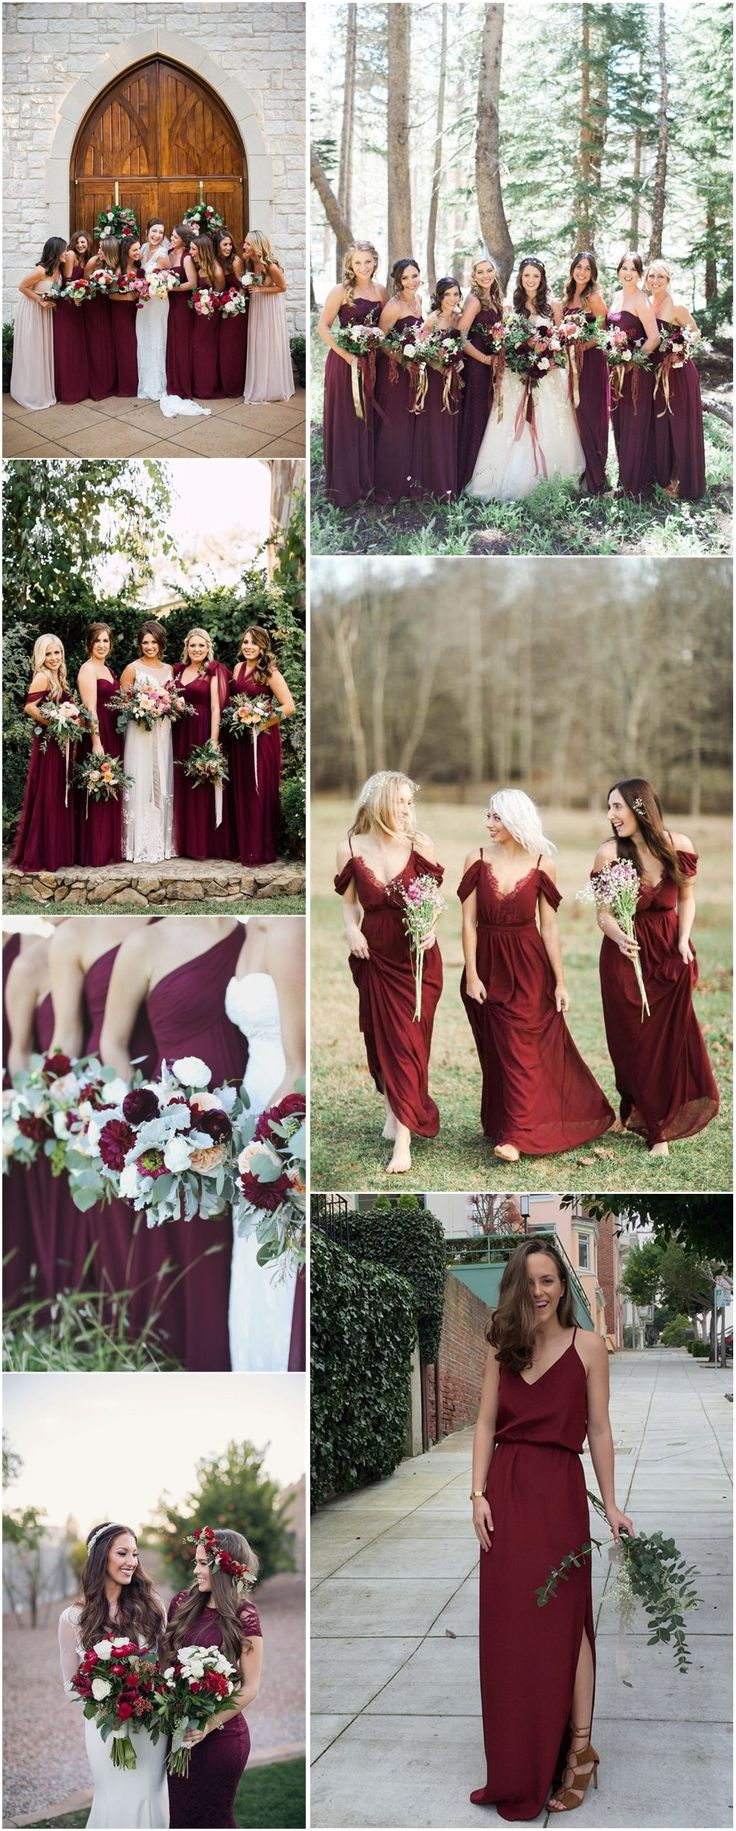 the 25 best winter bridesmaid dresses ideas on pinterest winter wedding bridesmaids winter. Black Bedroom Furniture Sets. Home Design Ideas